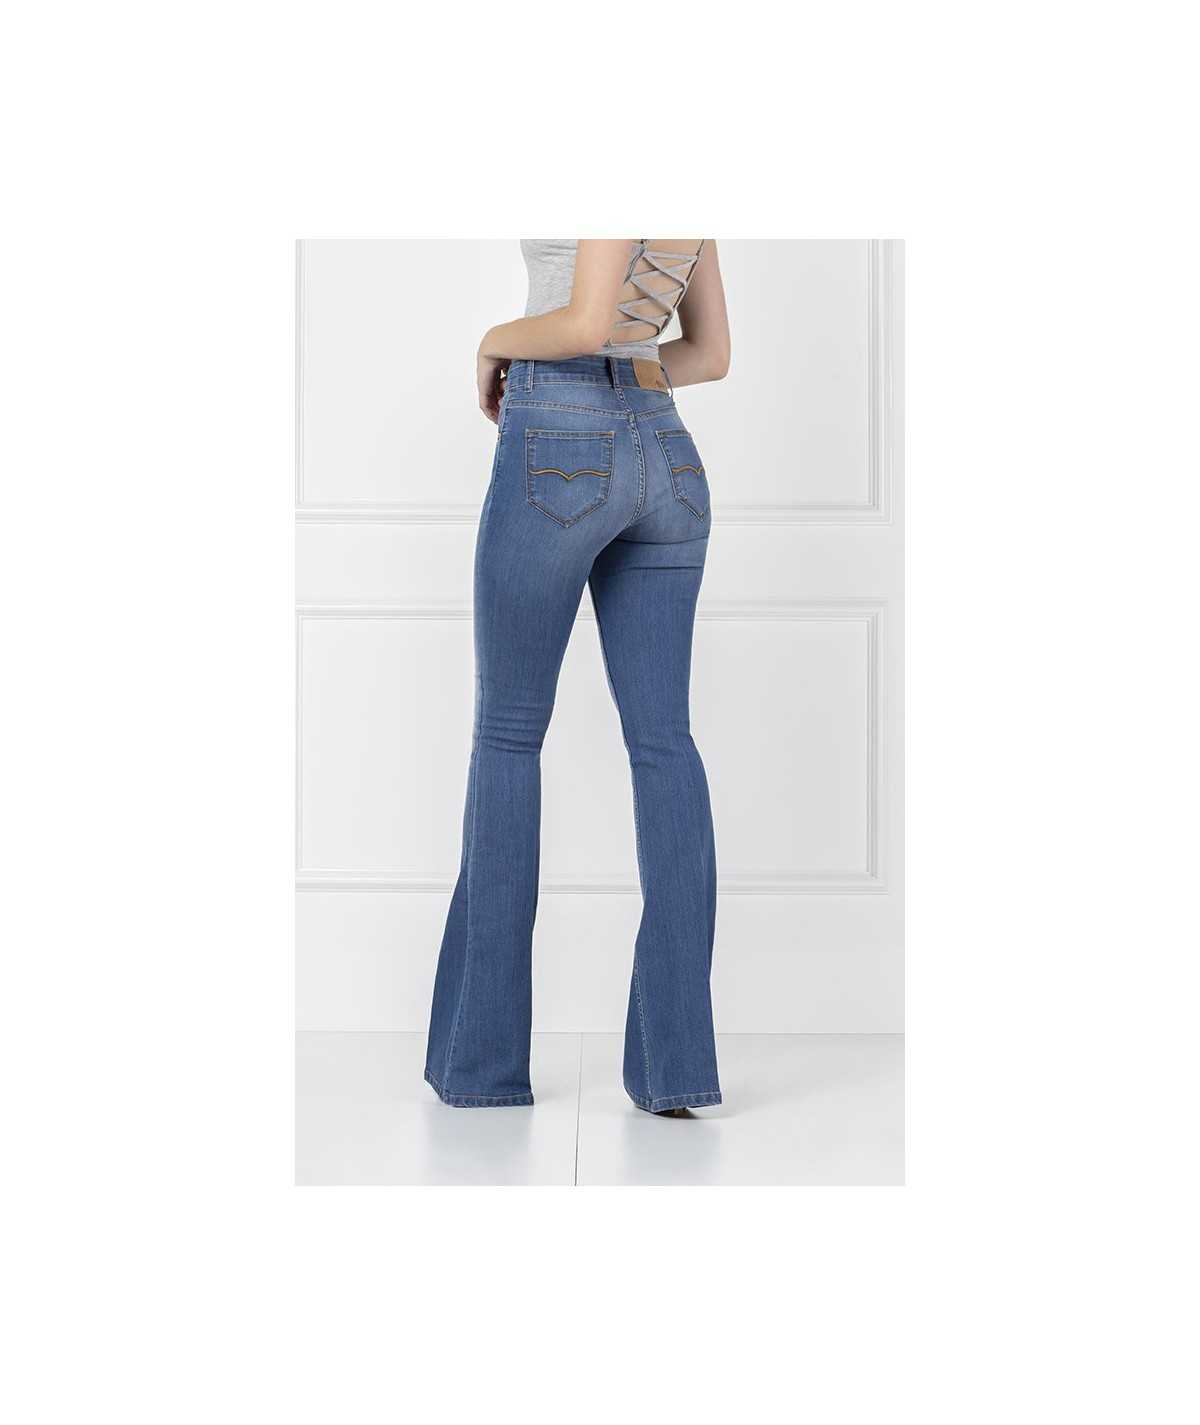 Flare Jeans - Lover Aly John